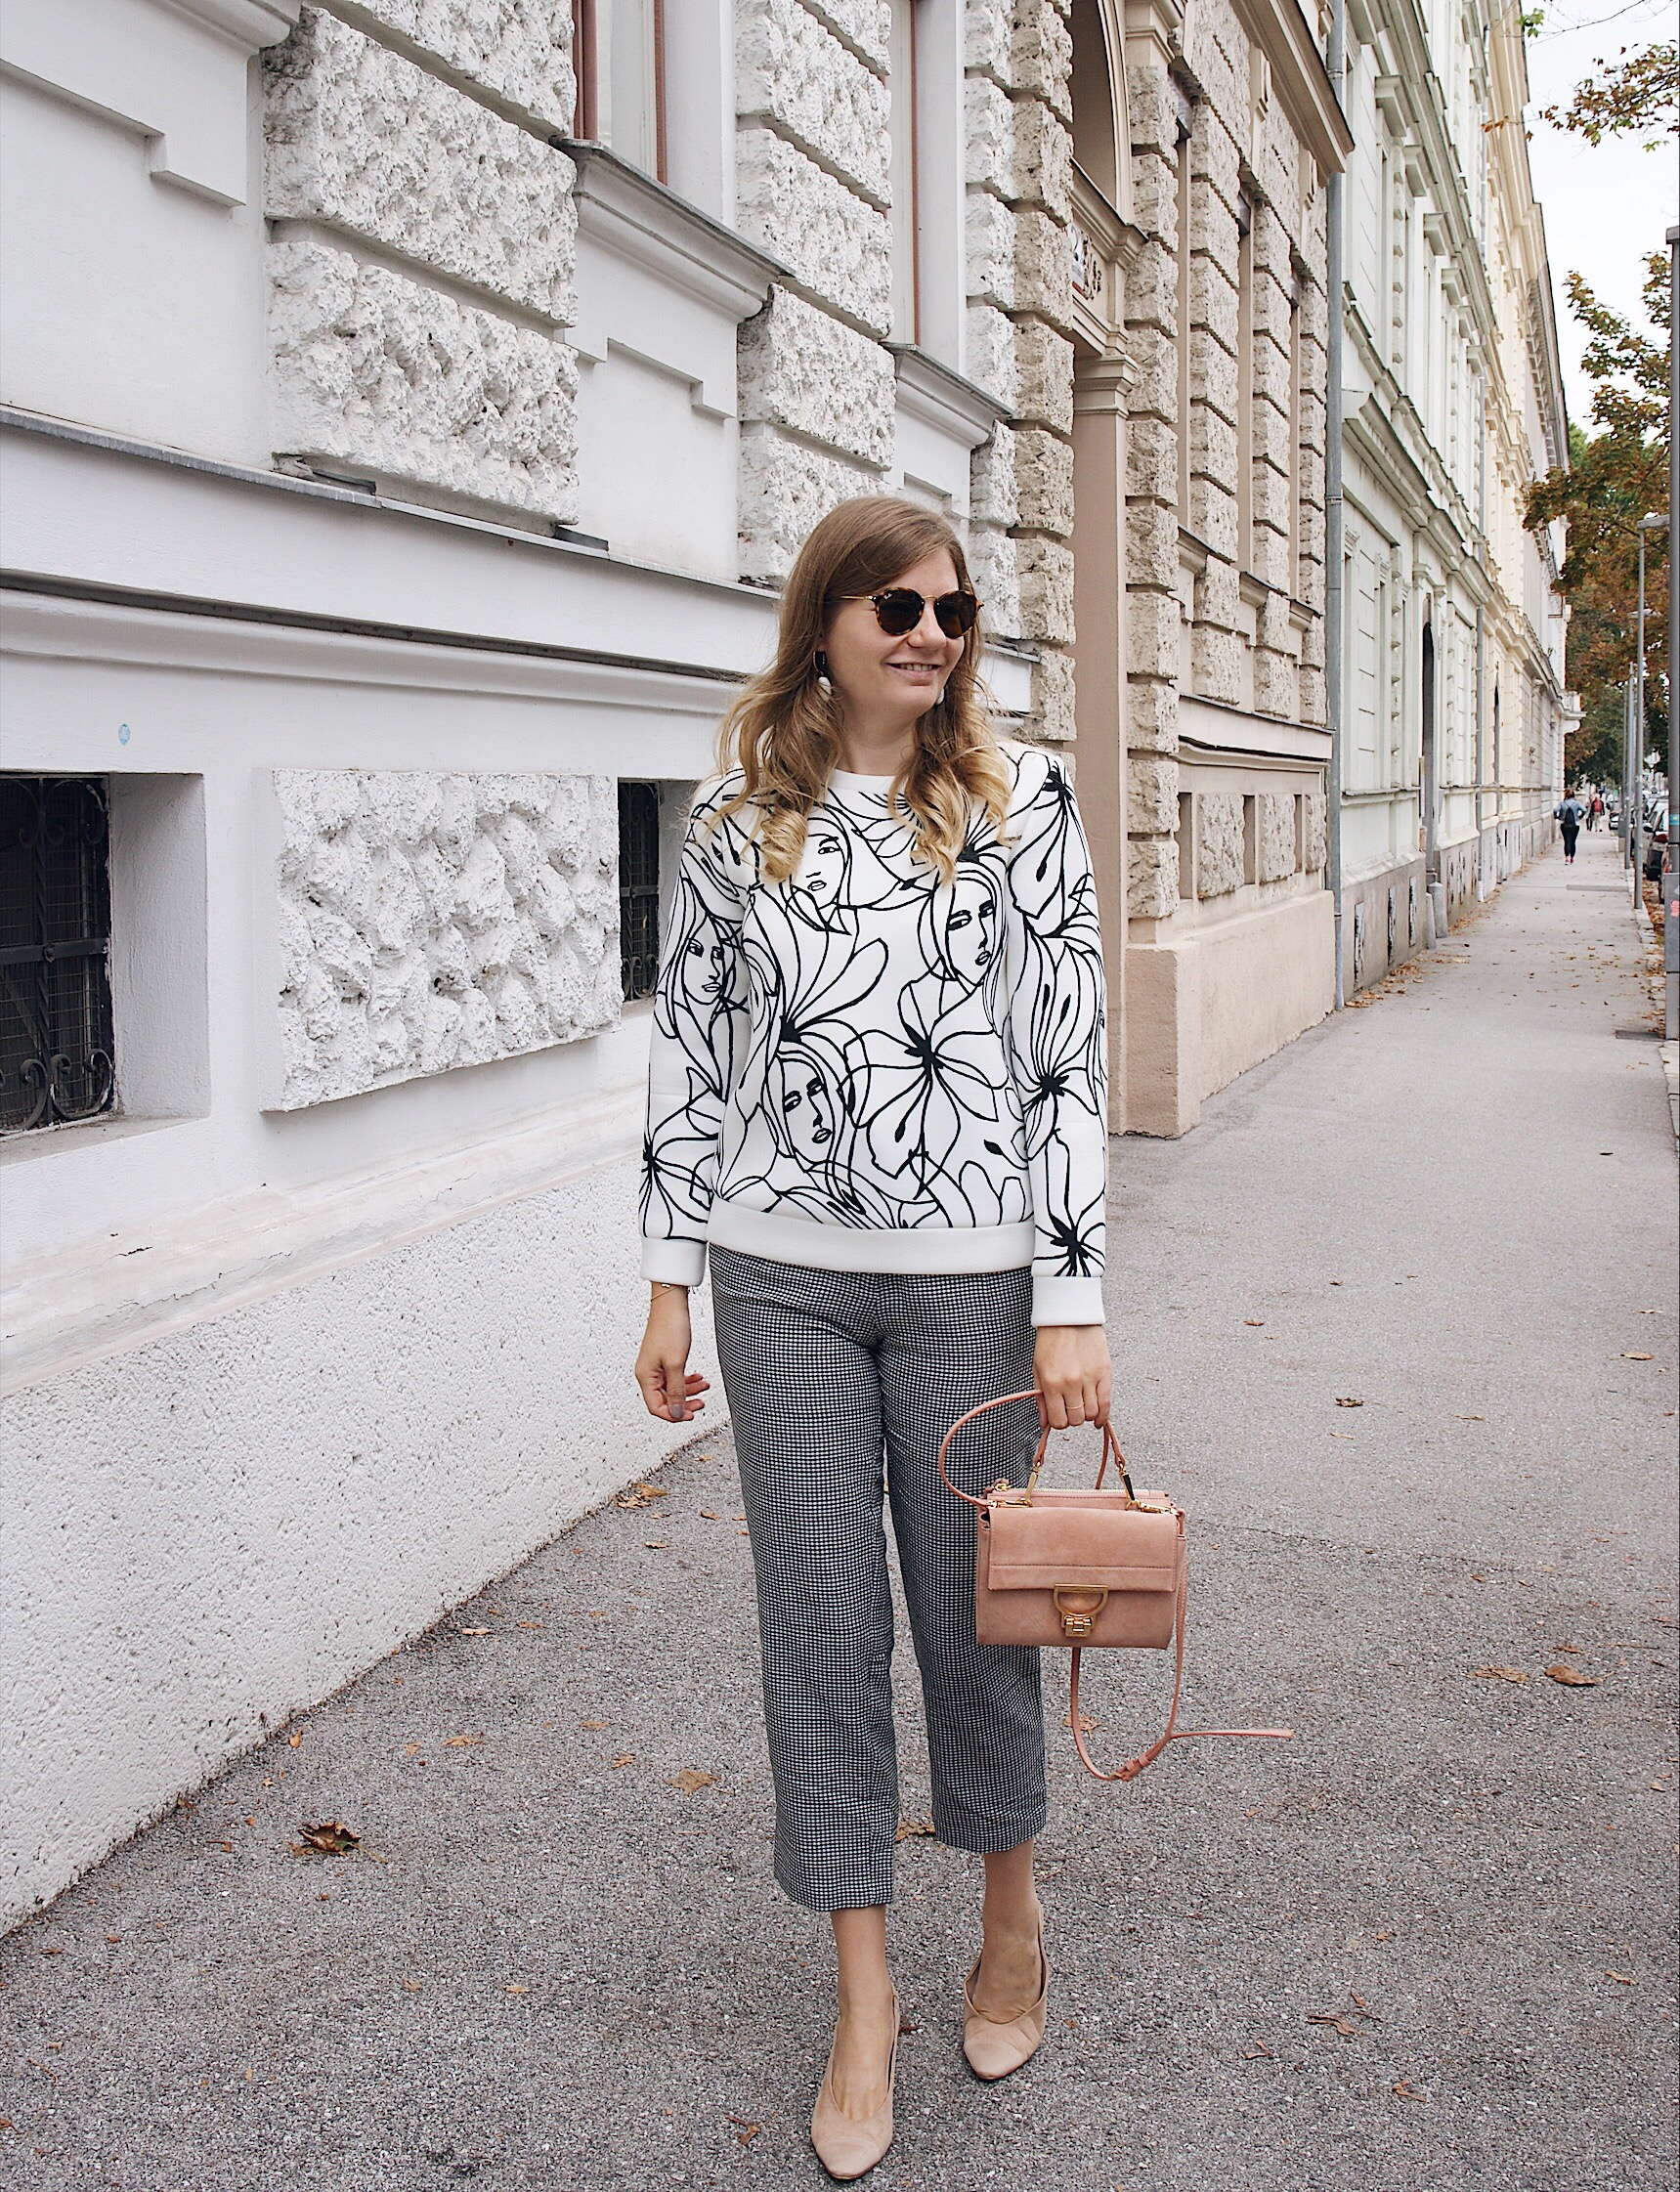 Streetstyle Herbst Outfit Karohose und Skribble Print Sweater